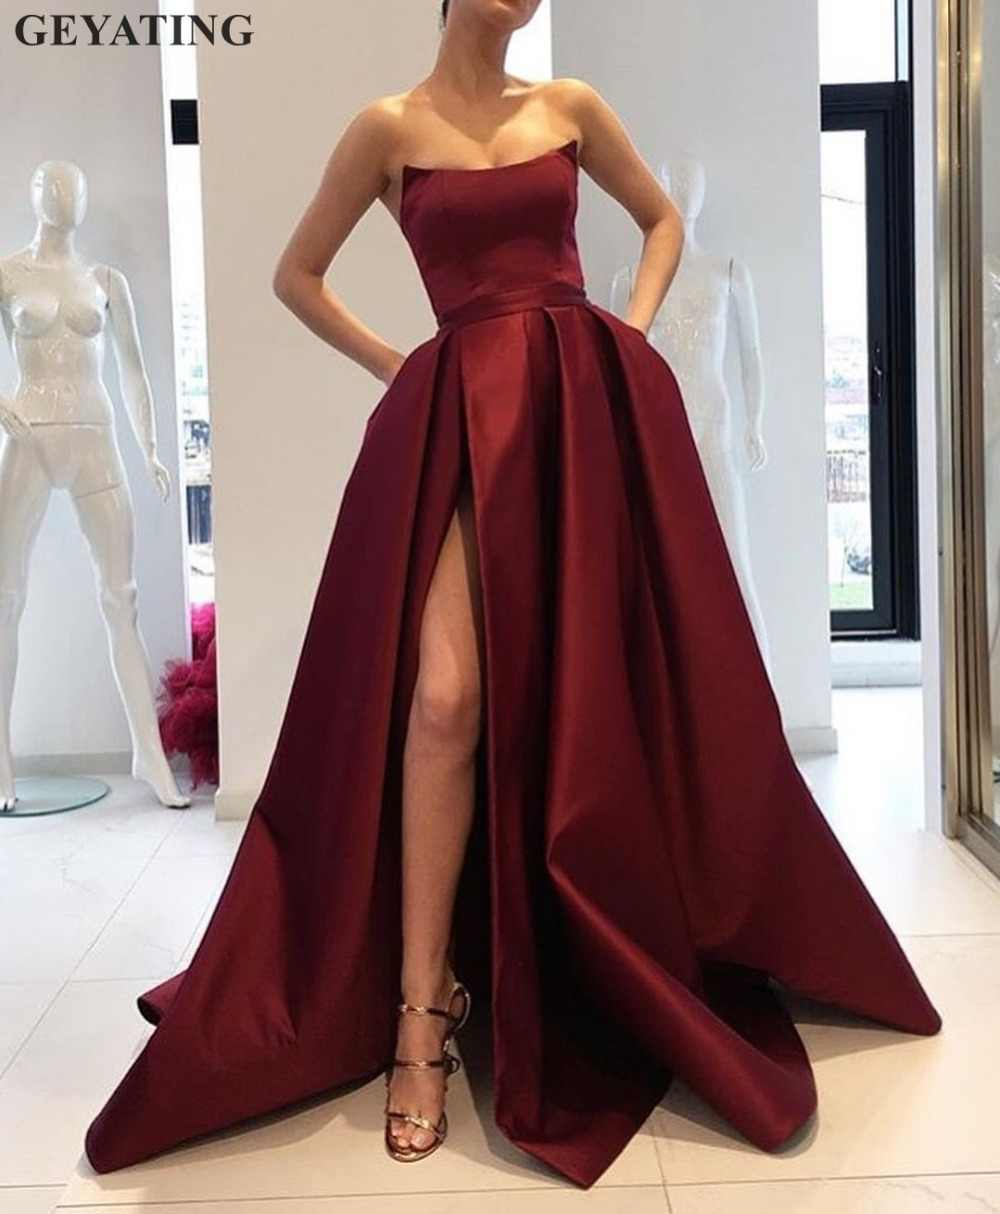 19291e47a98 2019 Burgundy Prom Dresses with Pockets Side Slit Strapless Satin Elegant Long  Evening Party Gowns Wine